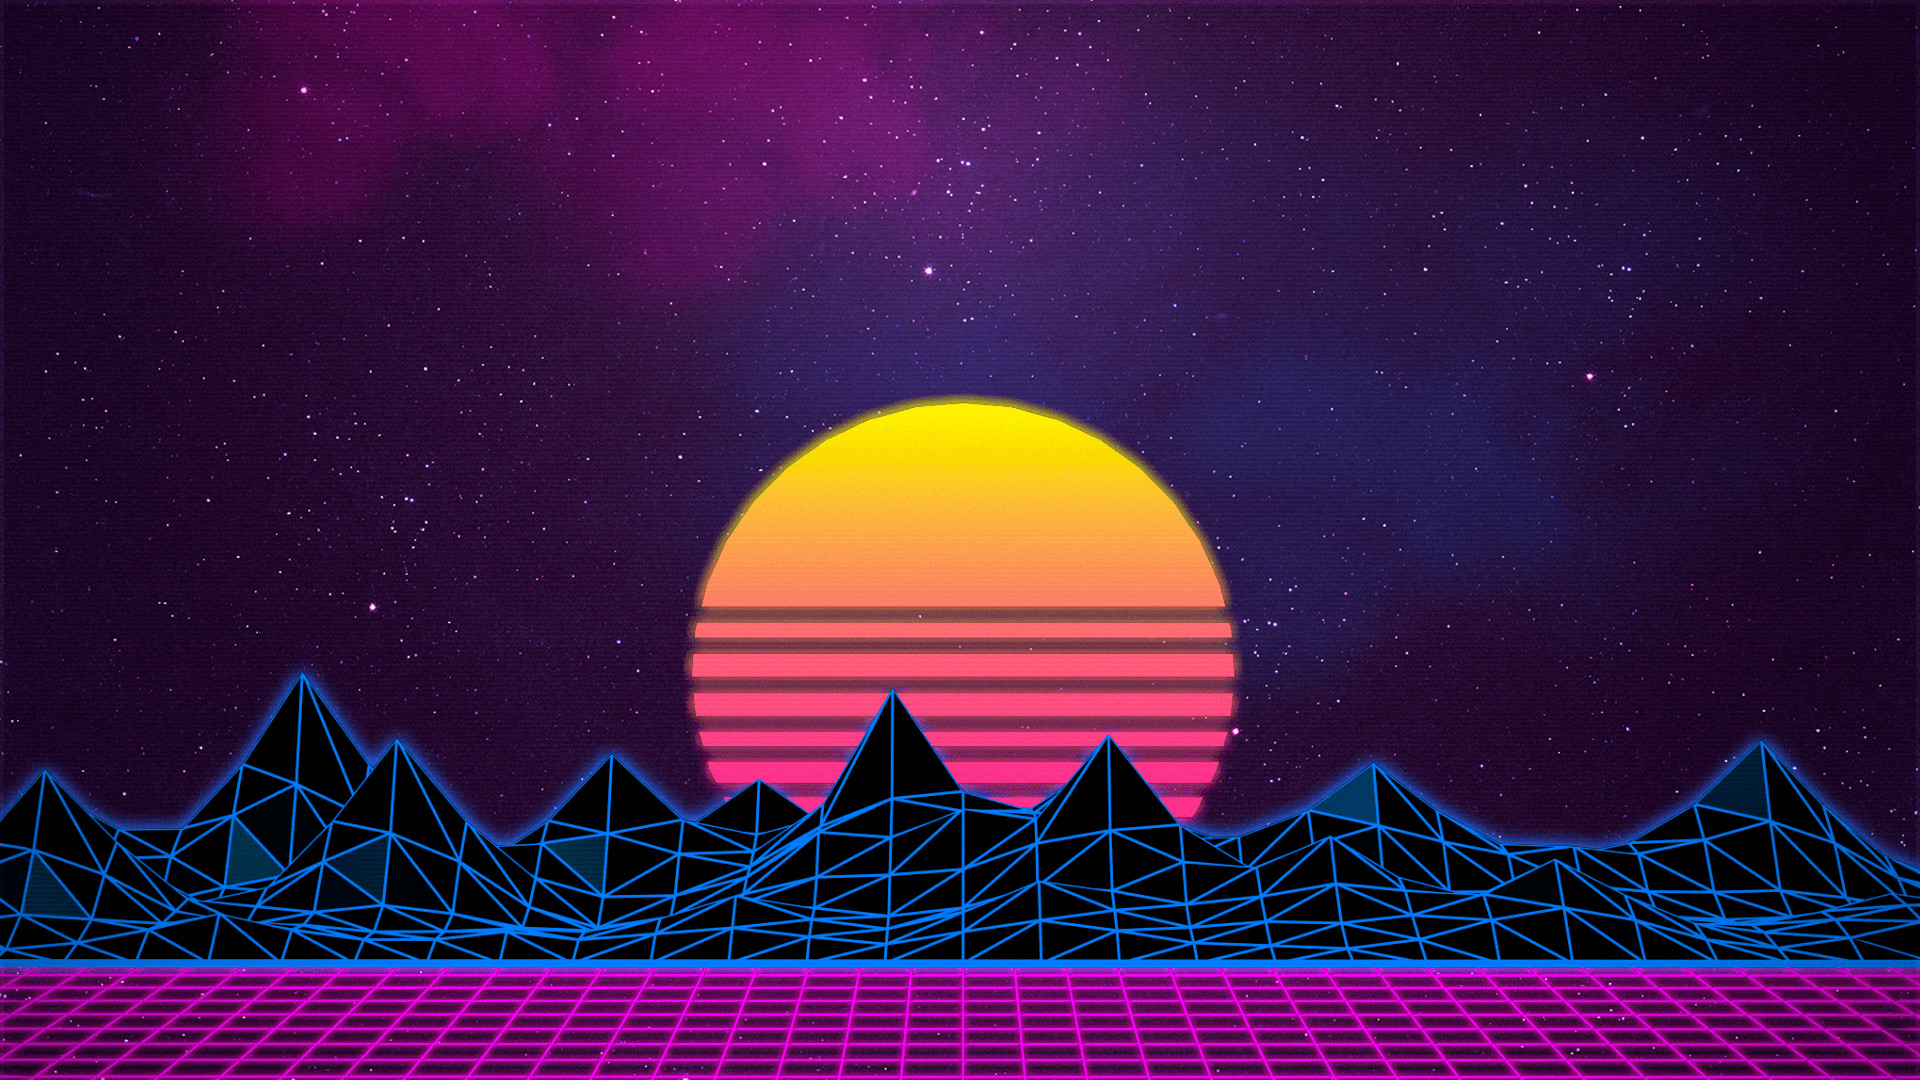 79 Retro Game Wallpapers on WallpaperPlay 1920x1080